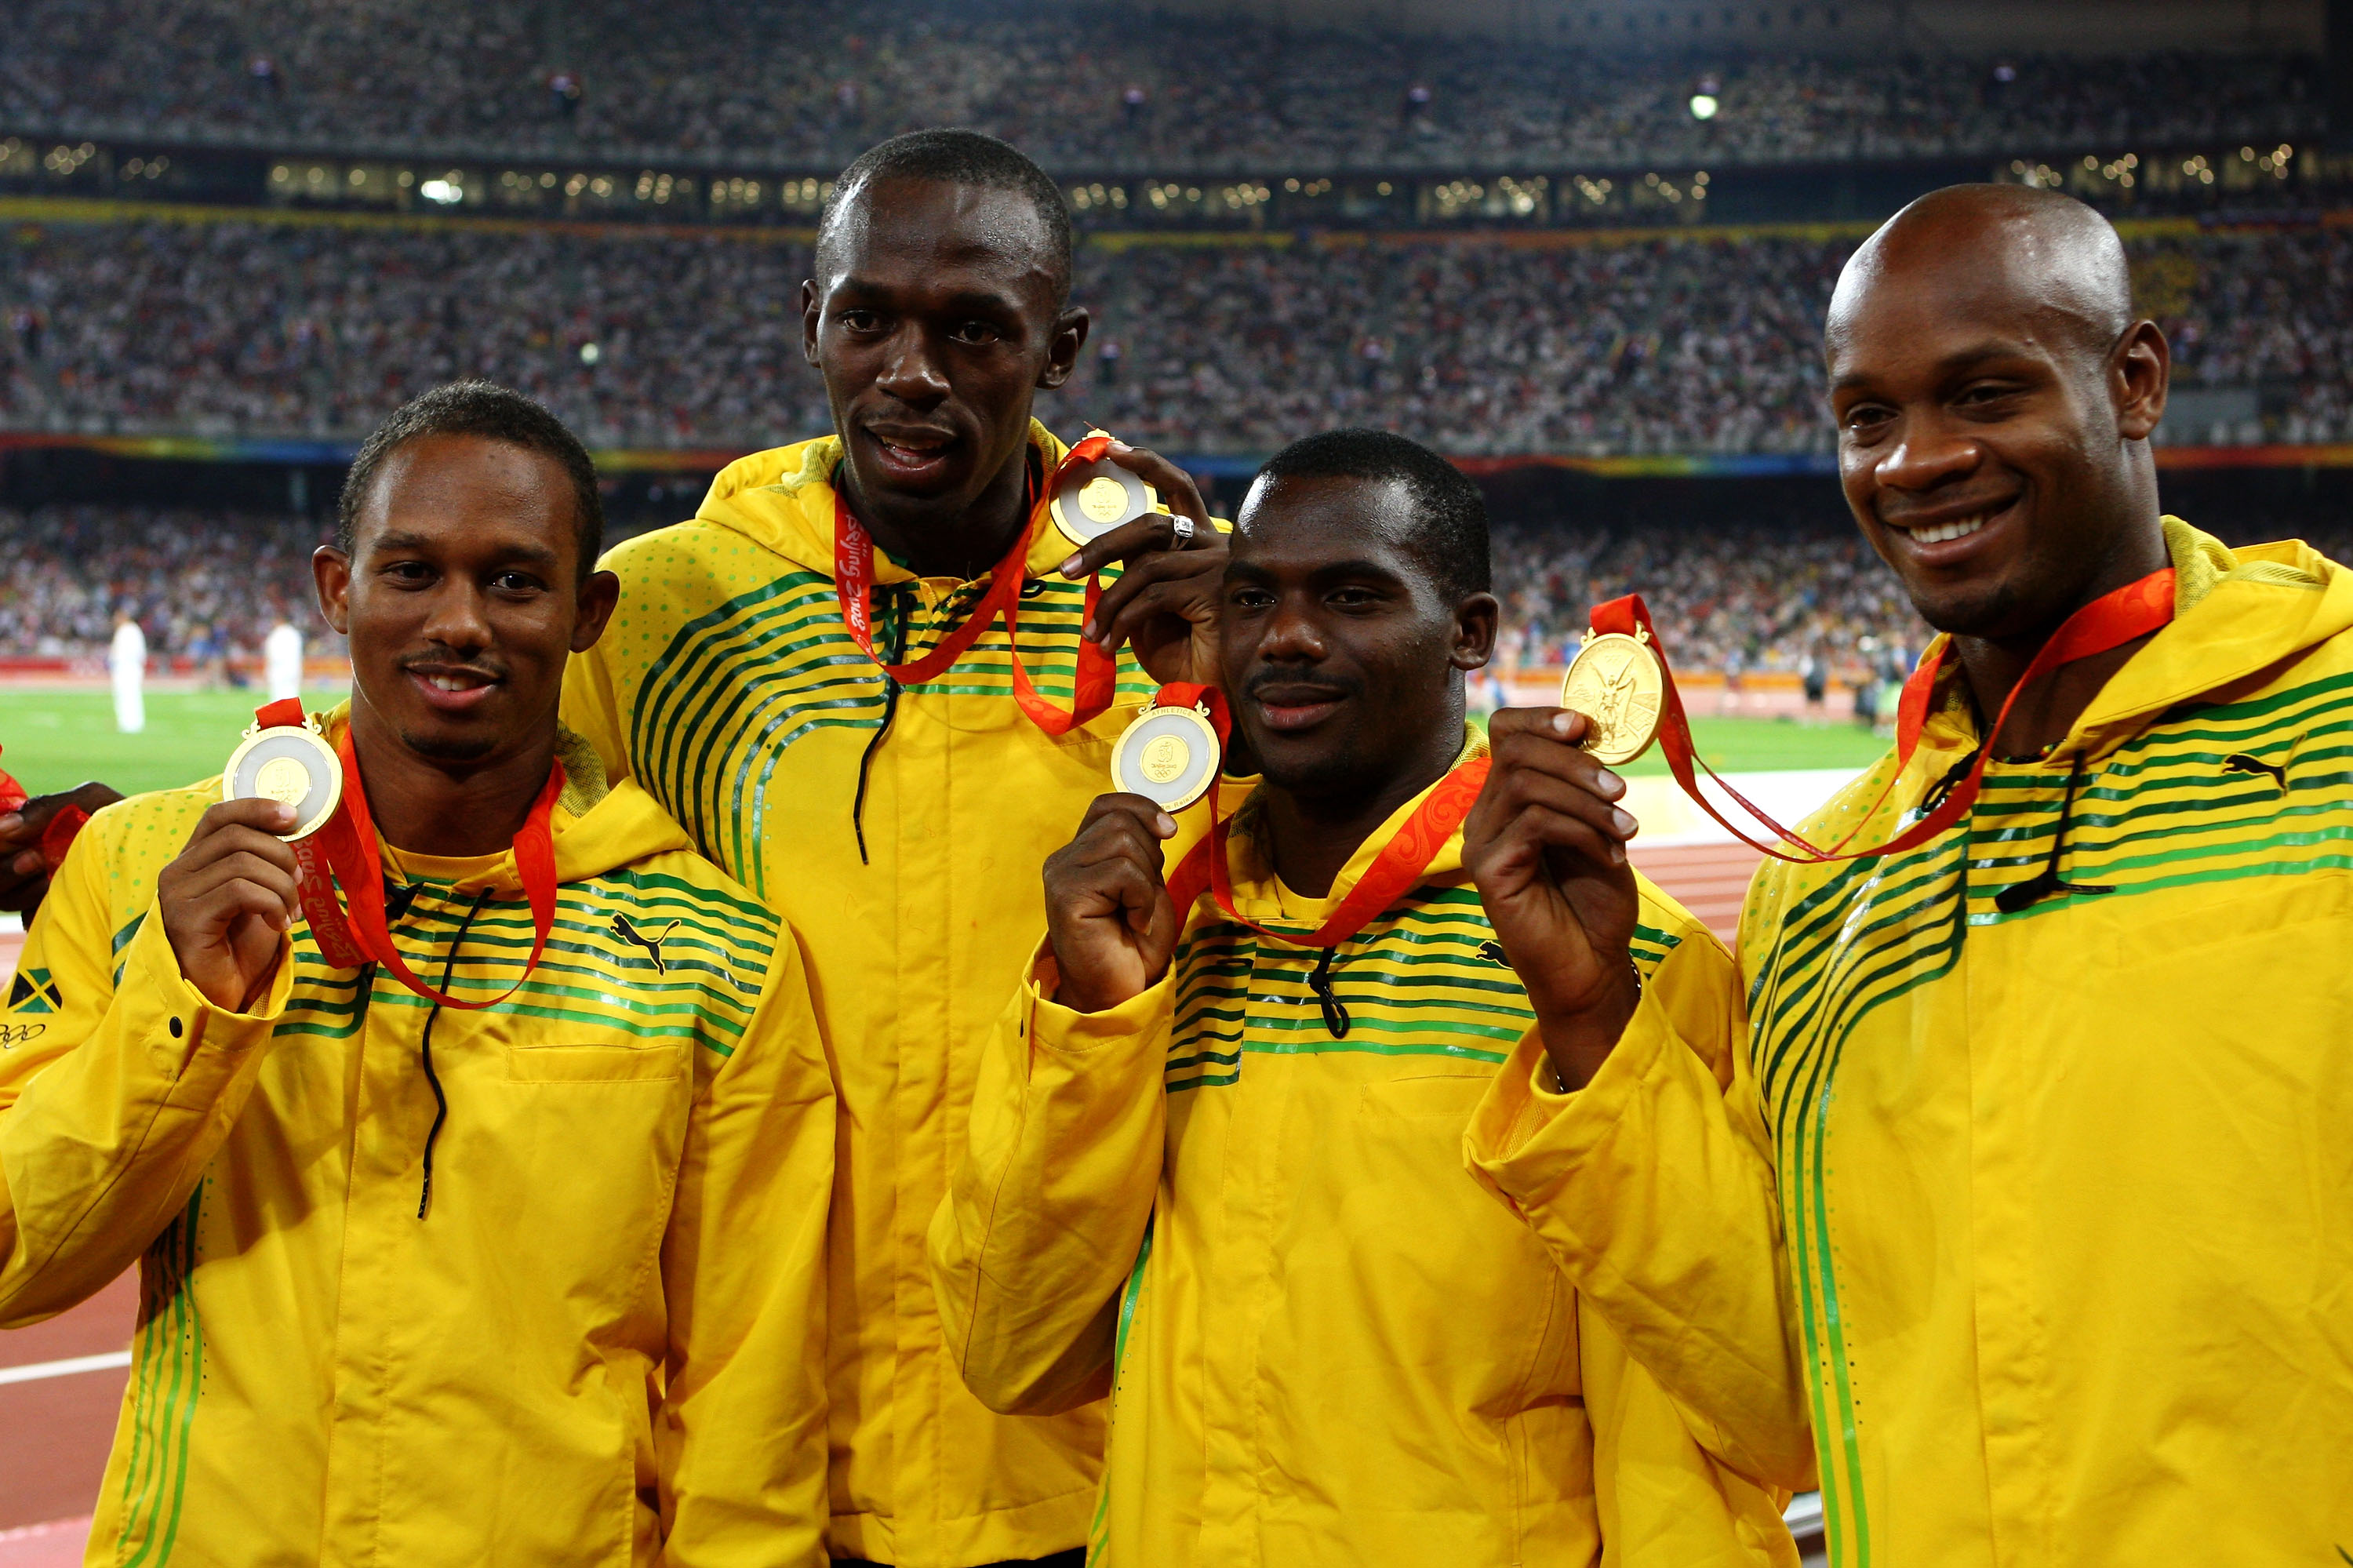 BEIJING - AUGUST 23:  (L to R) Michael Frater, Usain Bolt, Nesta Carter and Asafa Powell of Jamaica receive their gold medals during the medal ceremony for the Men's 4 x 100m Relay Finalheld at the National Stadium on Day 15 of the Beijing 2008 Olympic Games on August 23, 2008 in Beijing, China.  (Photo by Julian Finney/Getty Images)